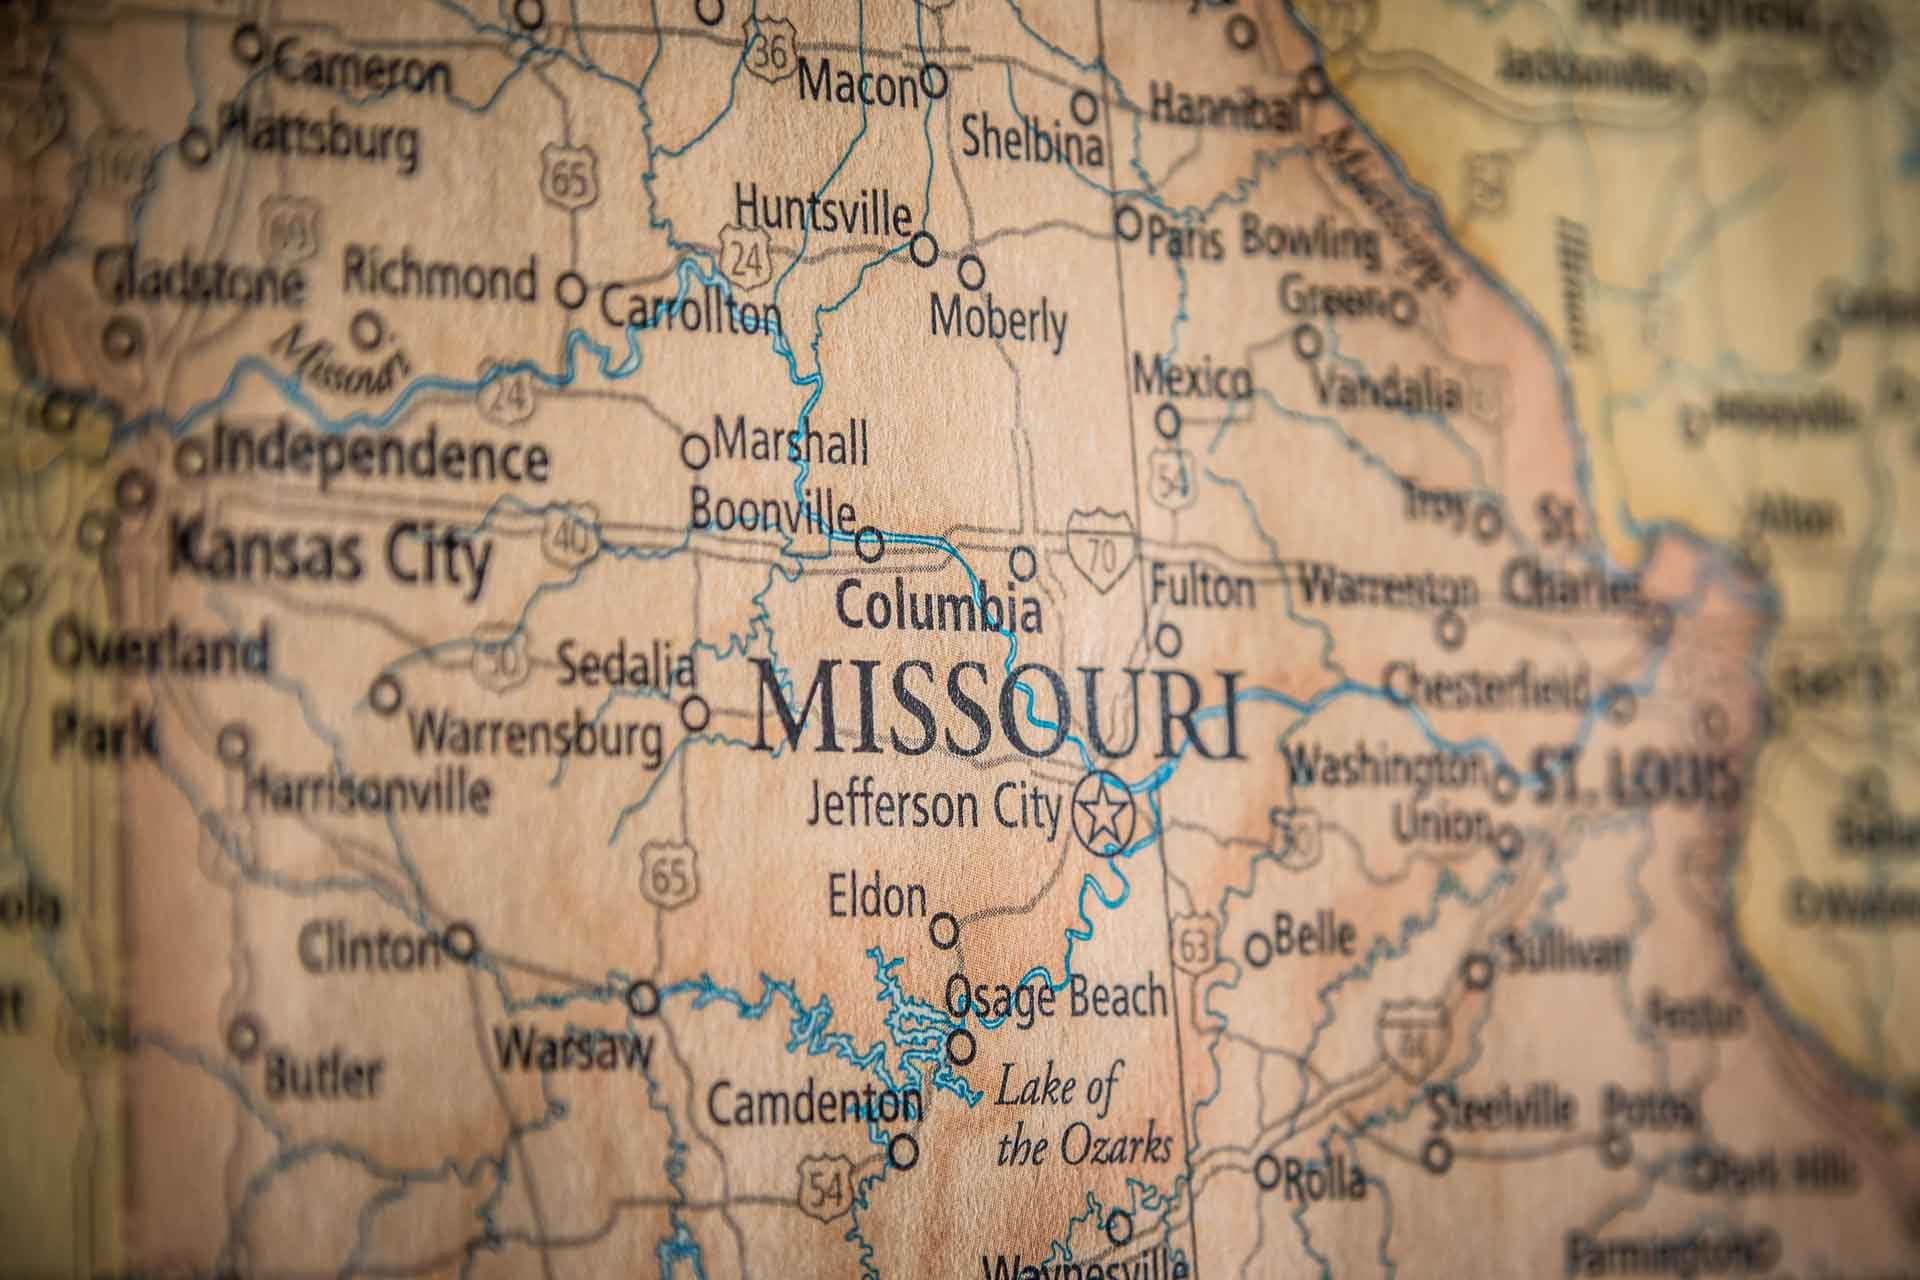 Missouri Mesothelioma Lawsuits